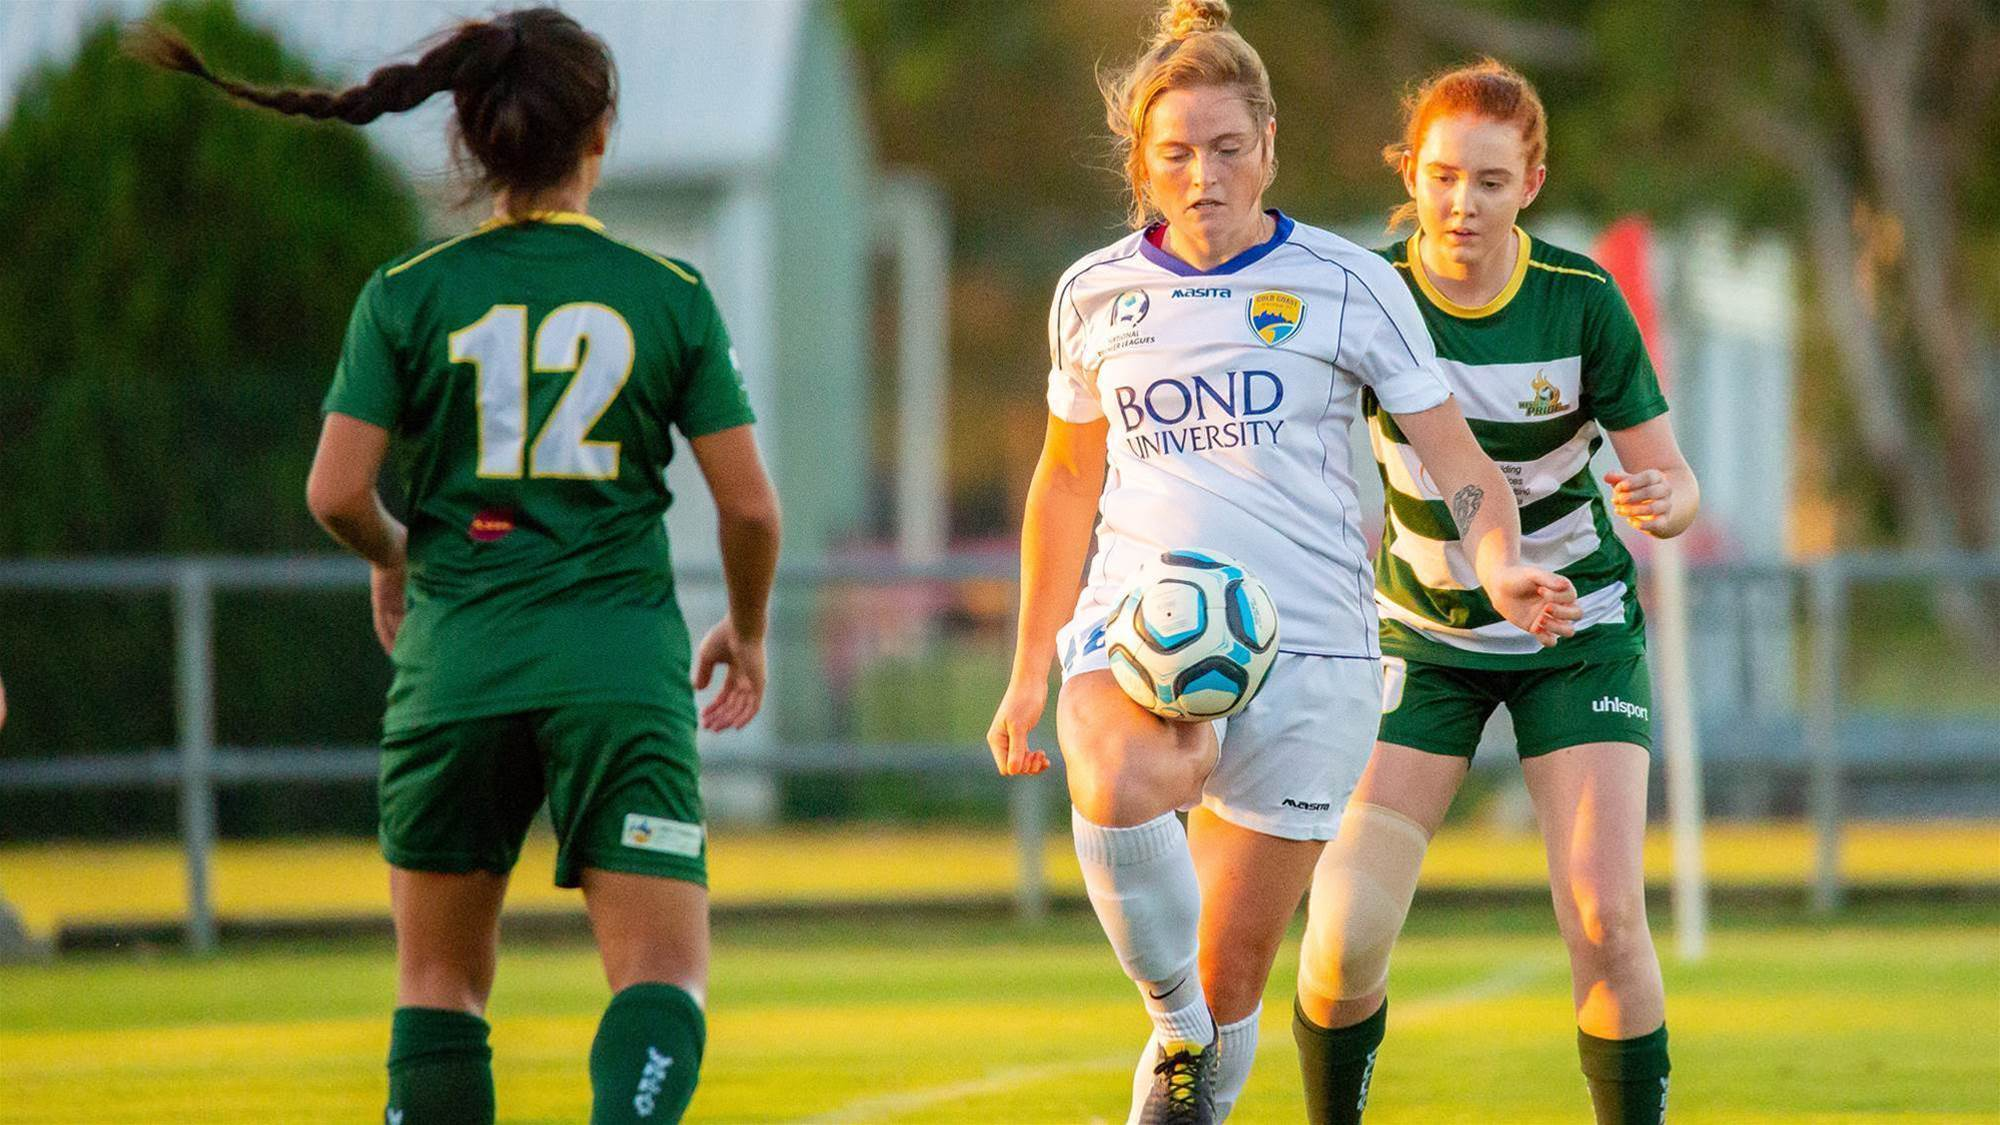 NPLW Golden Boot signs with Canberra